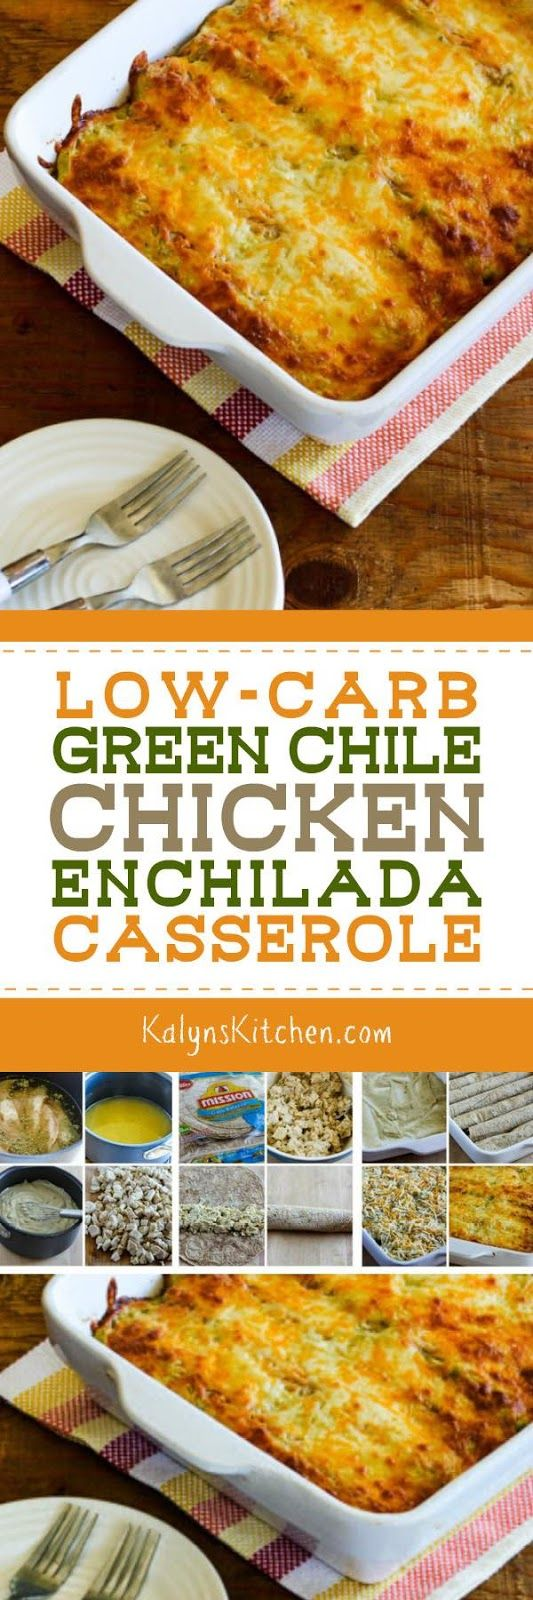 It might be too soon to think about recipes for Back-to-School dinners, but PIN this Low-Carb Green Chile Chicken Enchilada Casserole now and you'll have it when that time comes. And if you don't care about carbs, just use regular tortillas for this no-canned-soup enchilada casserole. [found on KalynsKitchen.com]